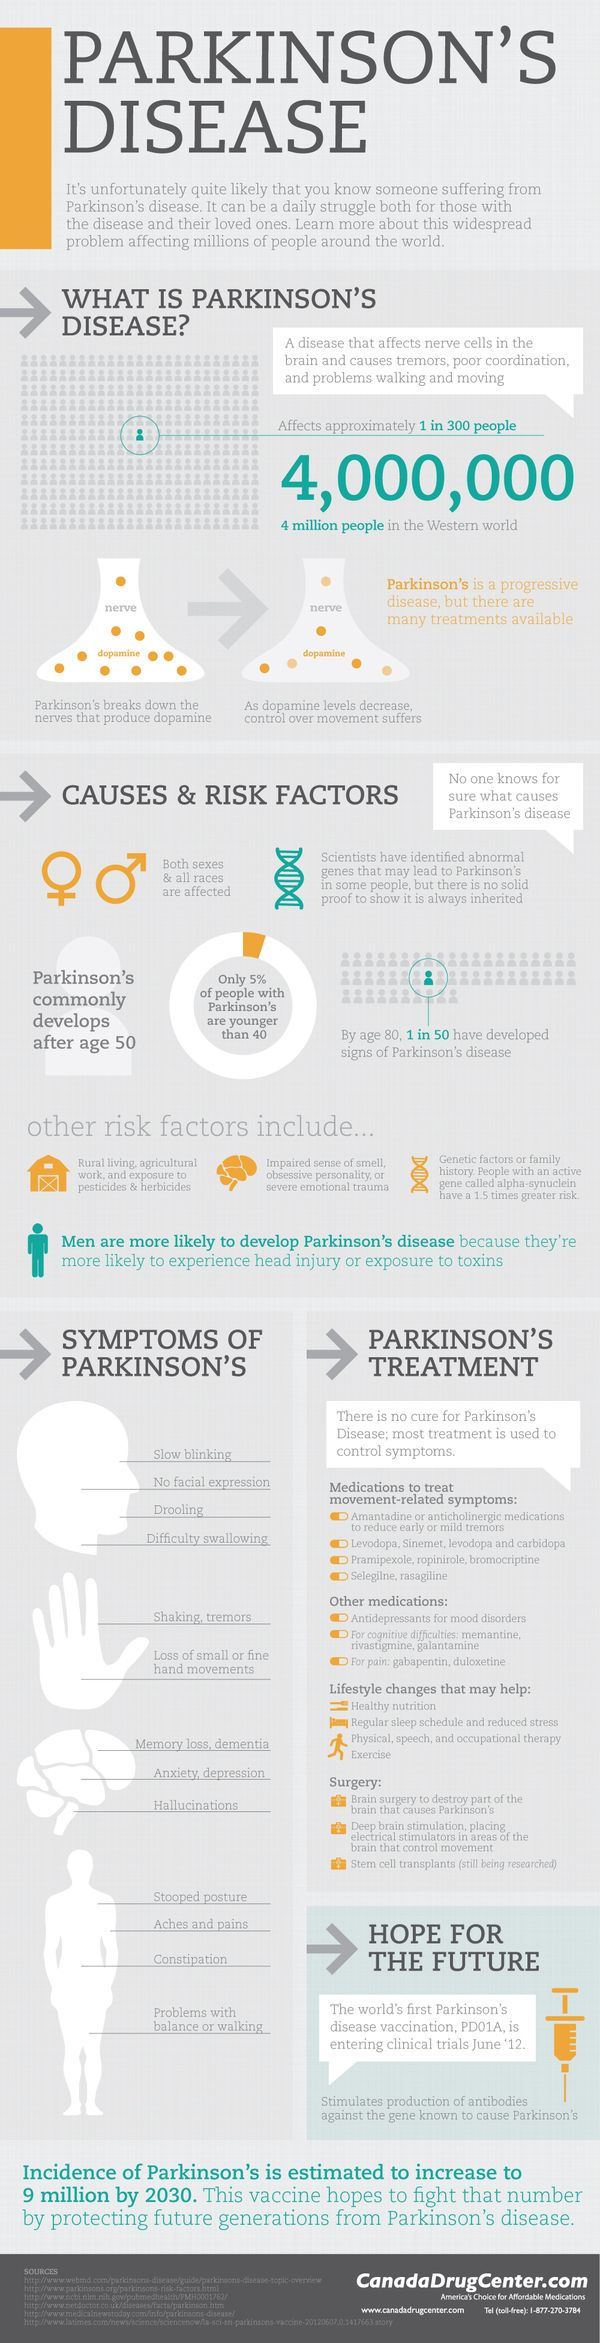 Parkinson's Disease affects a large amount of the US population and it is a disease which does not have a cure yet.